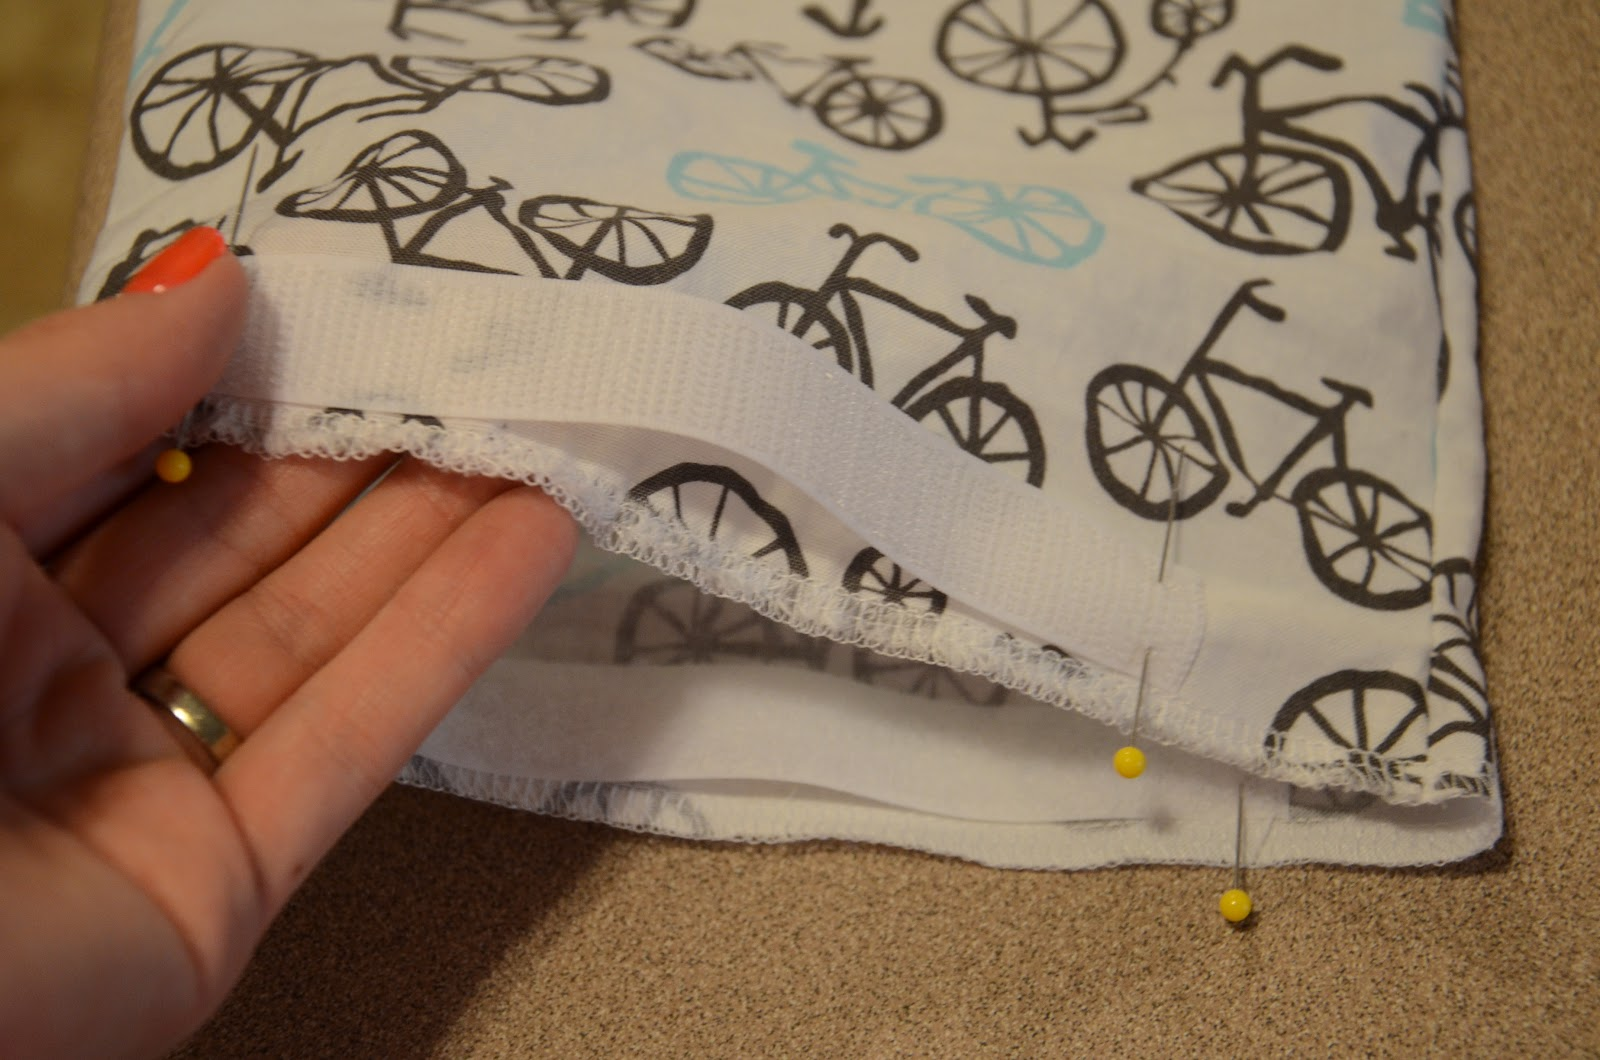 fde1e7ea2 ... fairfield world craft projects. Baby Crib Bumper Pattern merrick u0027s  art style sewing for the everyday girlcrib bumpers